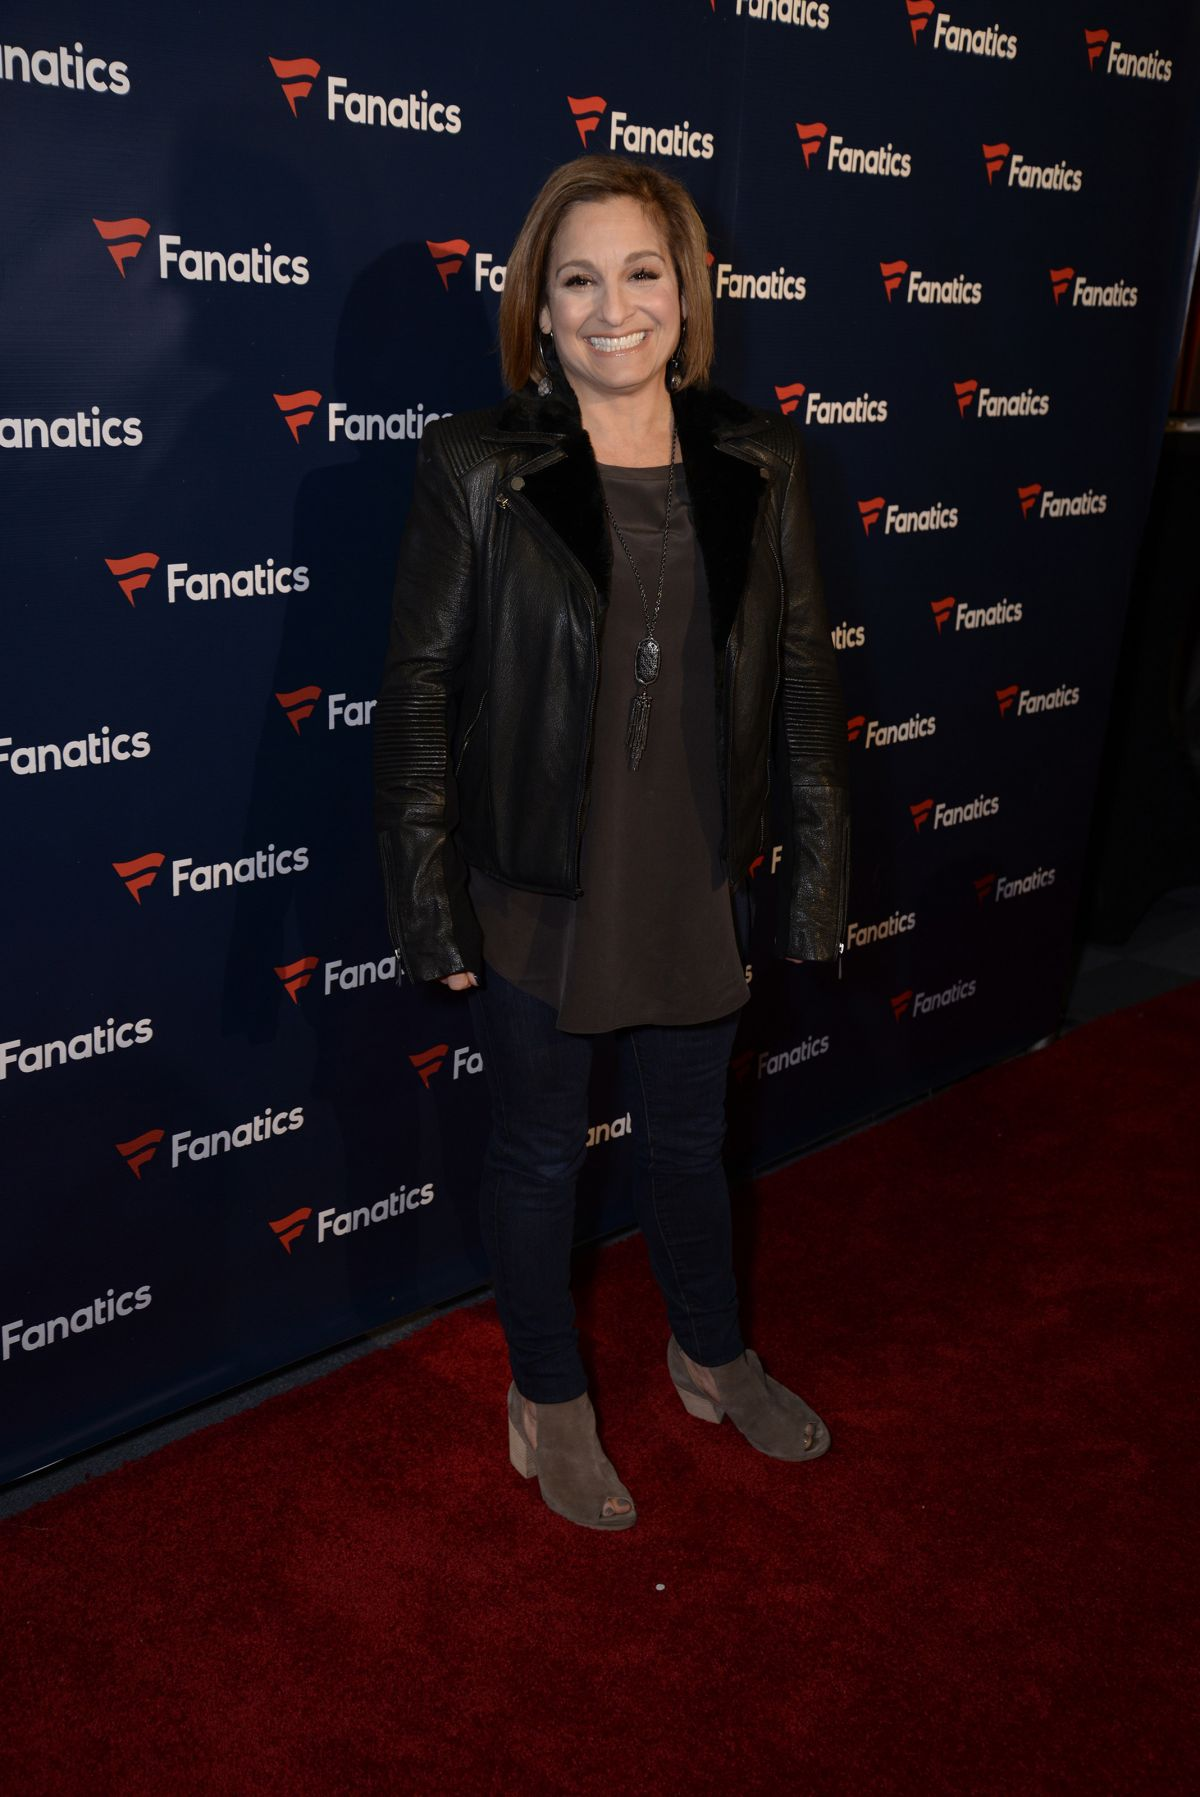 MARY LOU RETTON at Fanatics Super Bowl Party at Bayou Place in Houston 02/04/2017